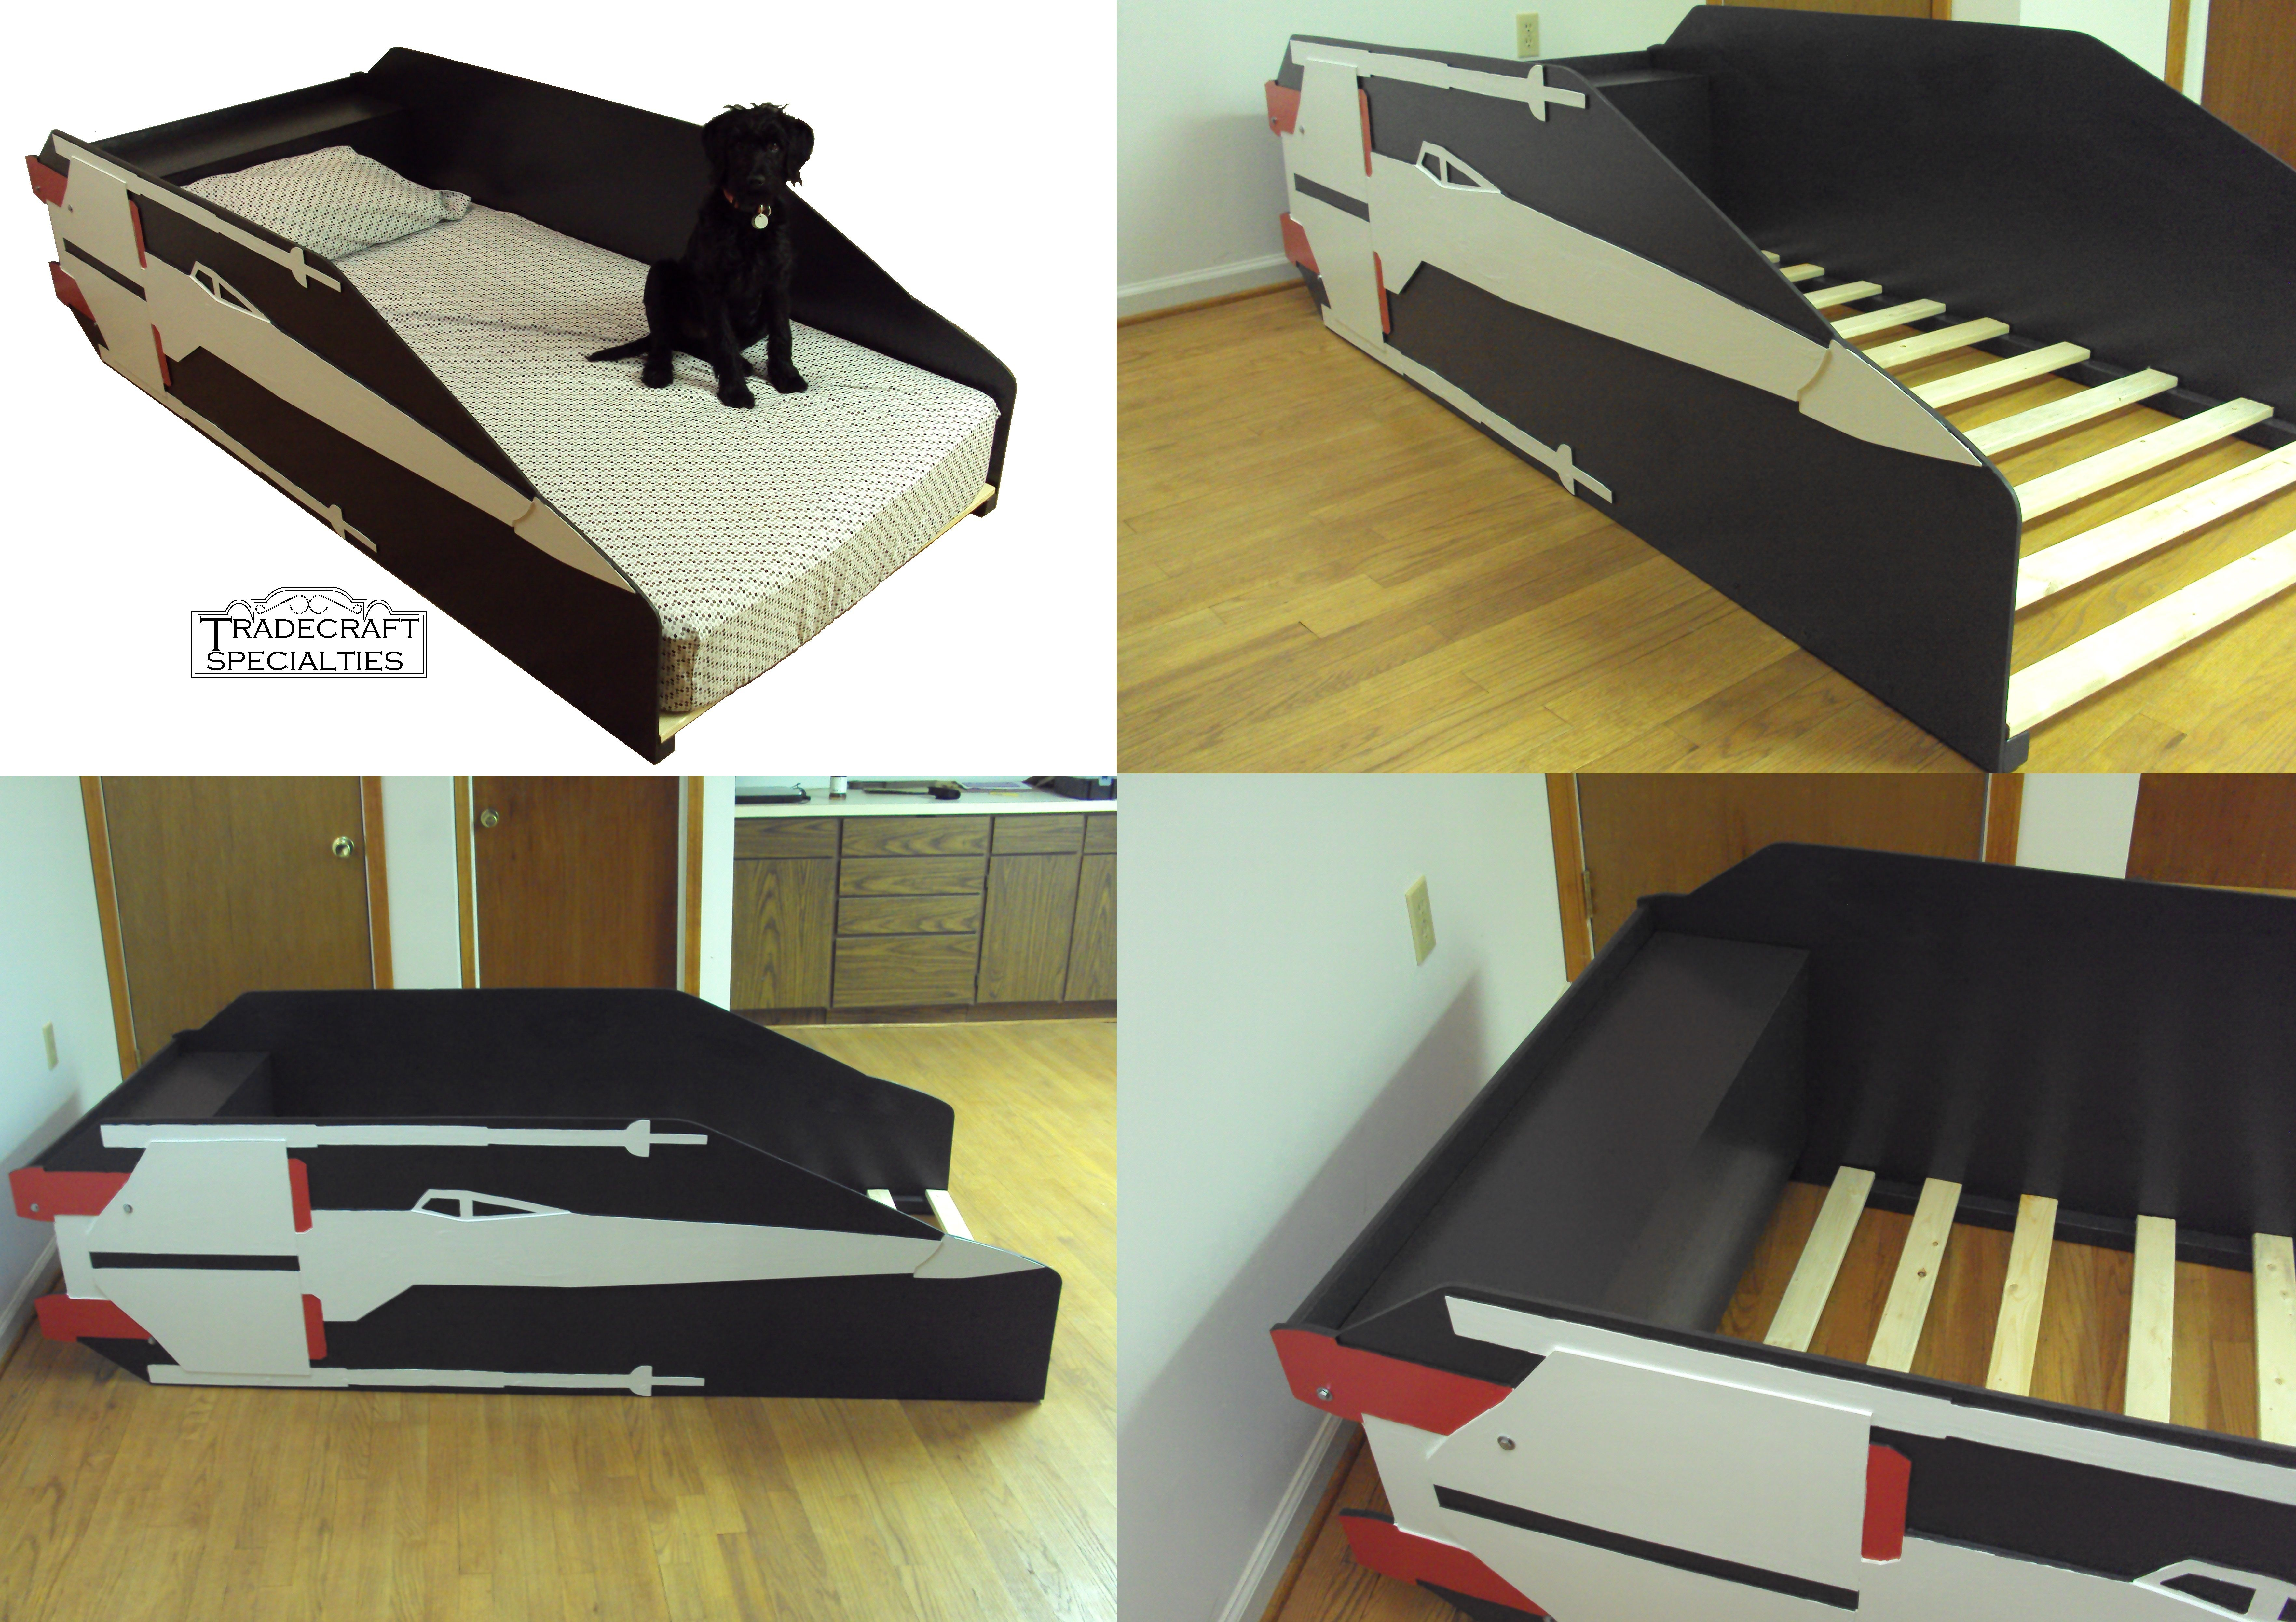 Buy a Handmade X-Wing Starfighter Twin Kids Bed Frame - Handcrafted ...